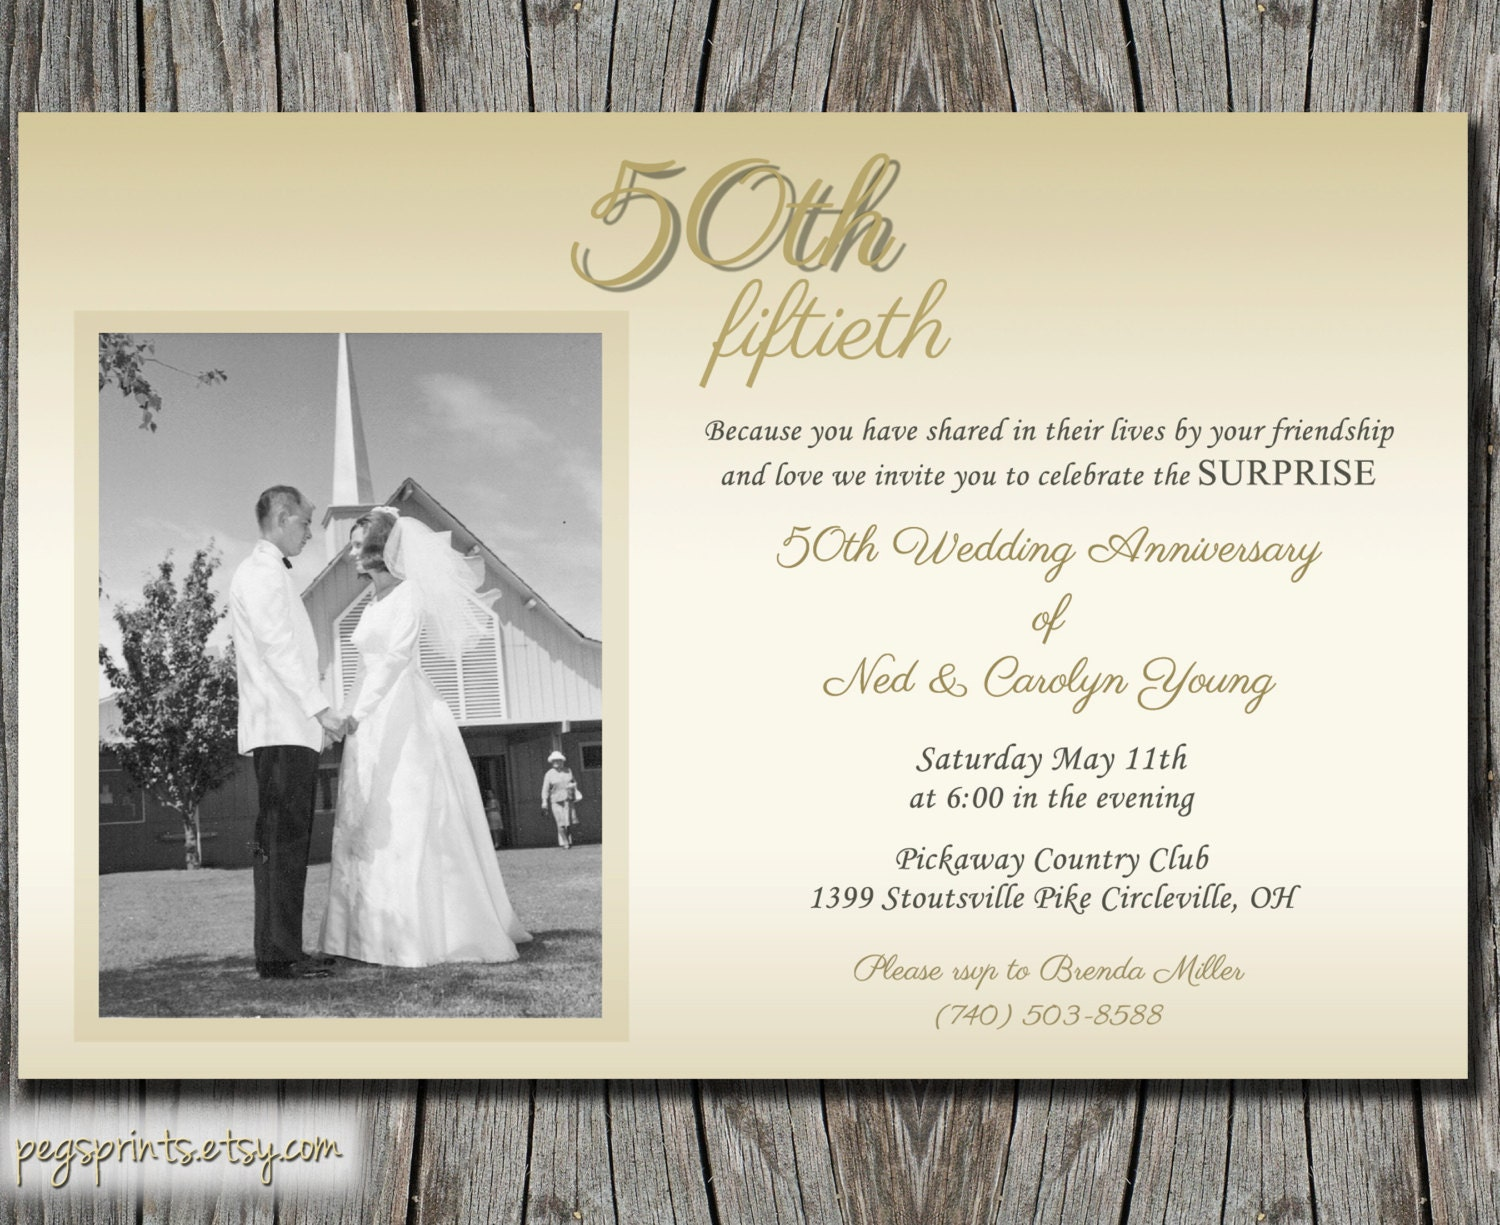 Fiftieth Wedding Anniversary Invitations: Surprise Wedding Anniversary Invitation 50th By PegsPrints